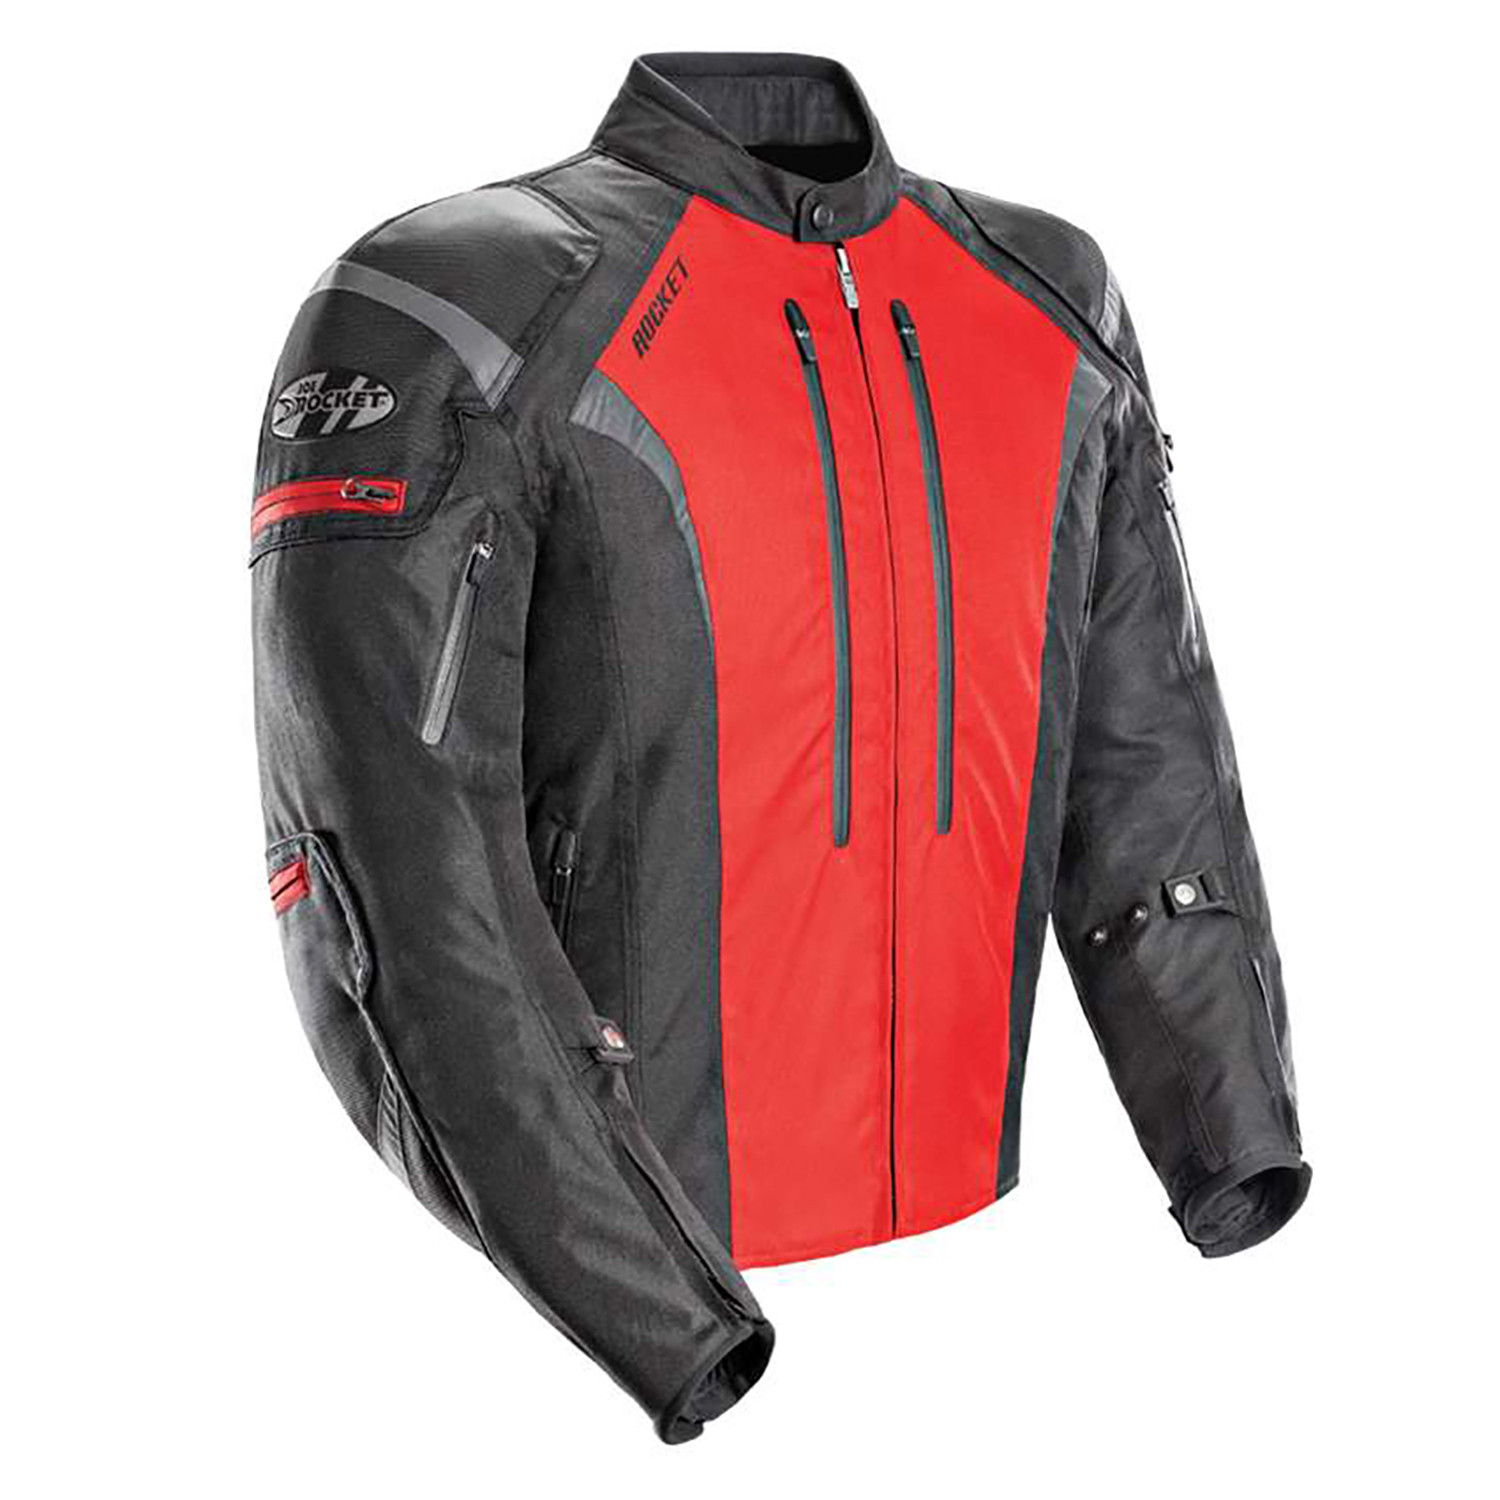 Campera Joe Rocket Atomic 5.0 Negro Rojo